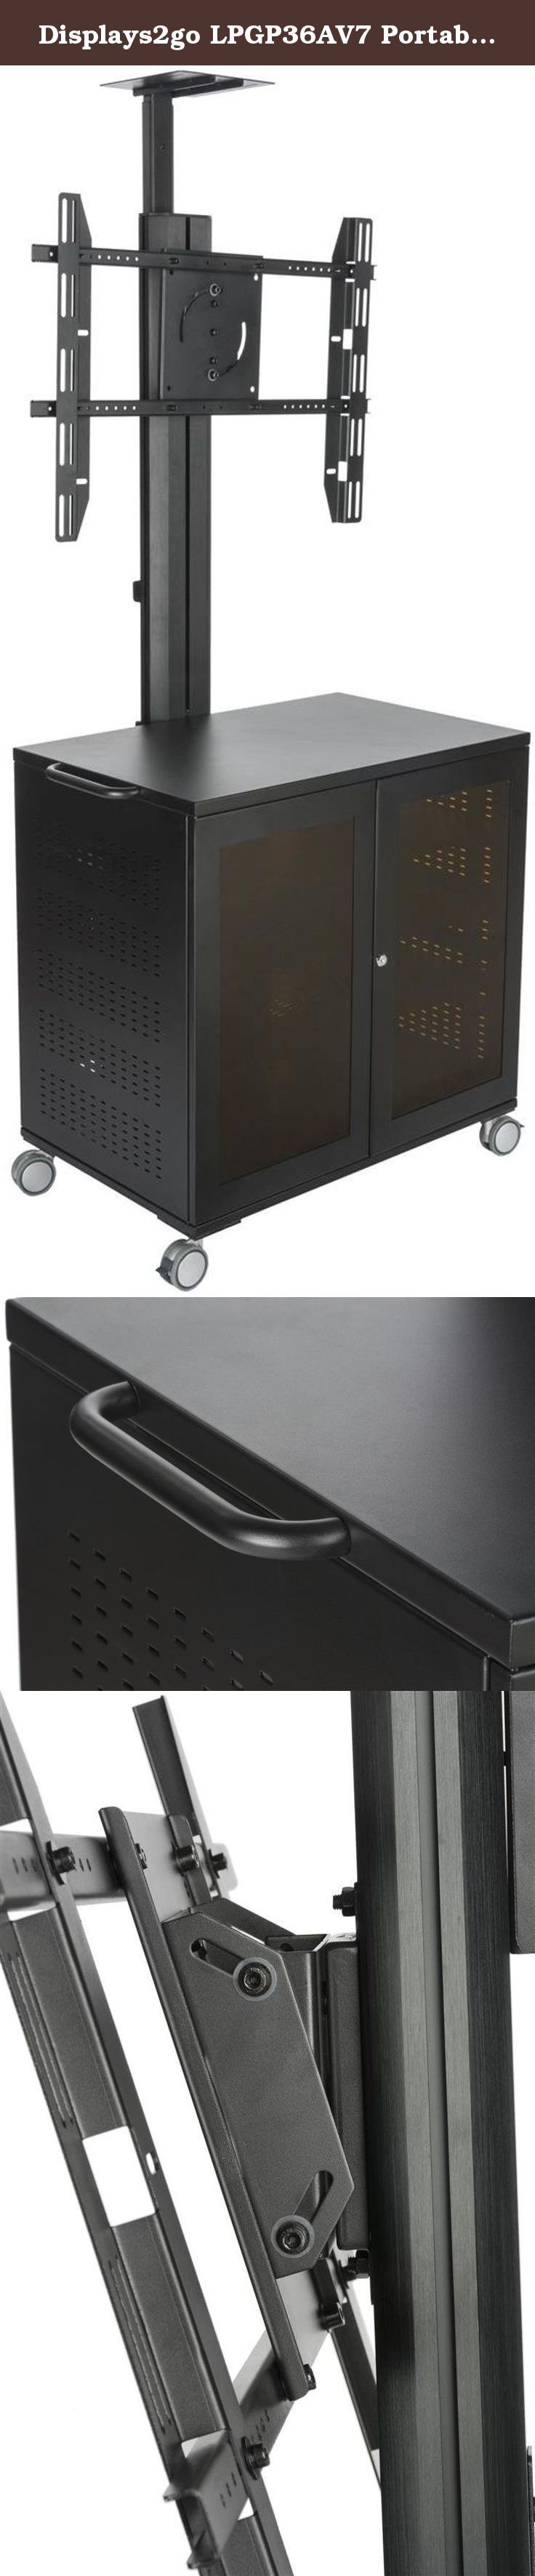 """Displays2go LPGP36AV7 Portable TV Stand with Locking Storage Cabinet, 30-84"""" VESA Mount. TV stand with locking cabinet for multimedia accessories. VESA mount holds 30-84"""" monitors and flat screen TVs. Plasma stand has 4 heavy duty wheels. Rolling TV stands can hold up to 330 lbs in weight. Cord management keeps unit neat and tidy."""